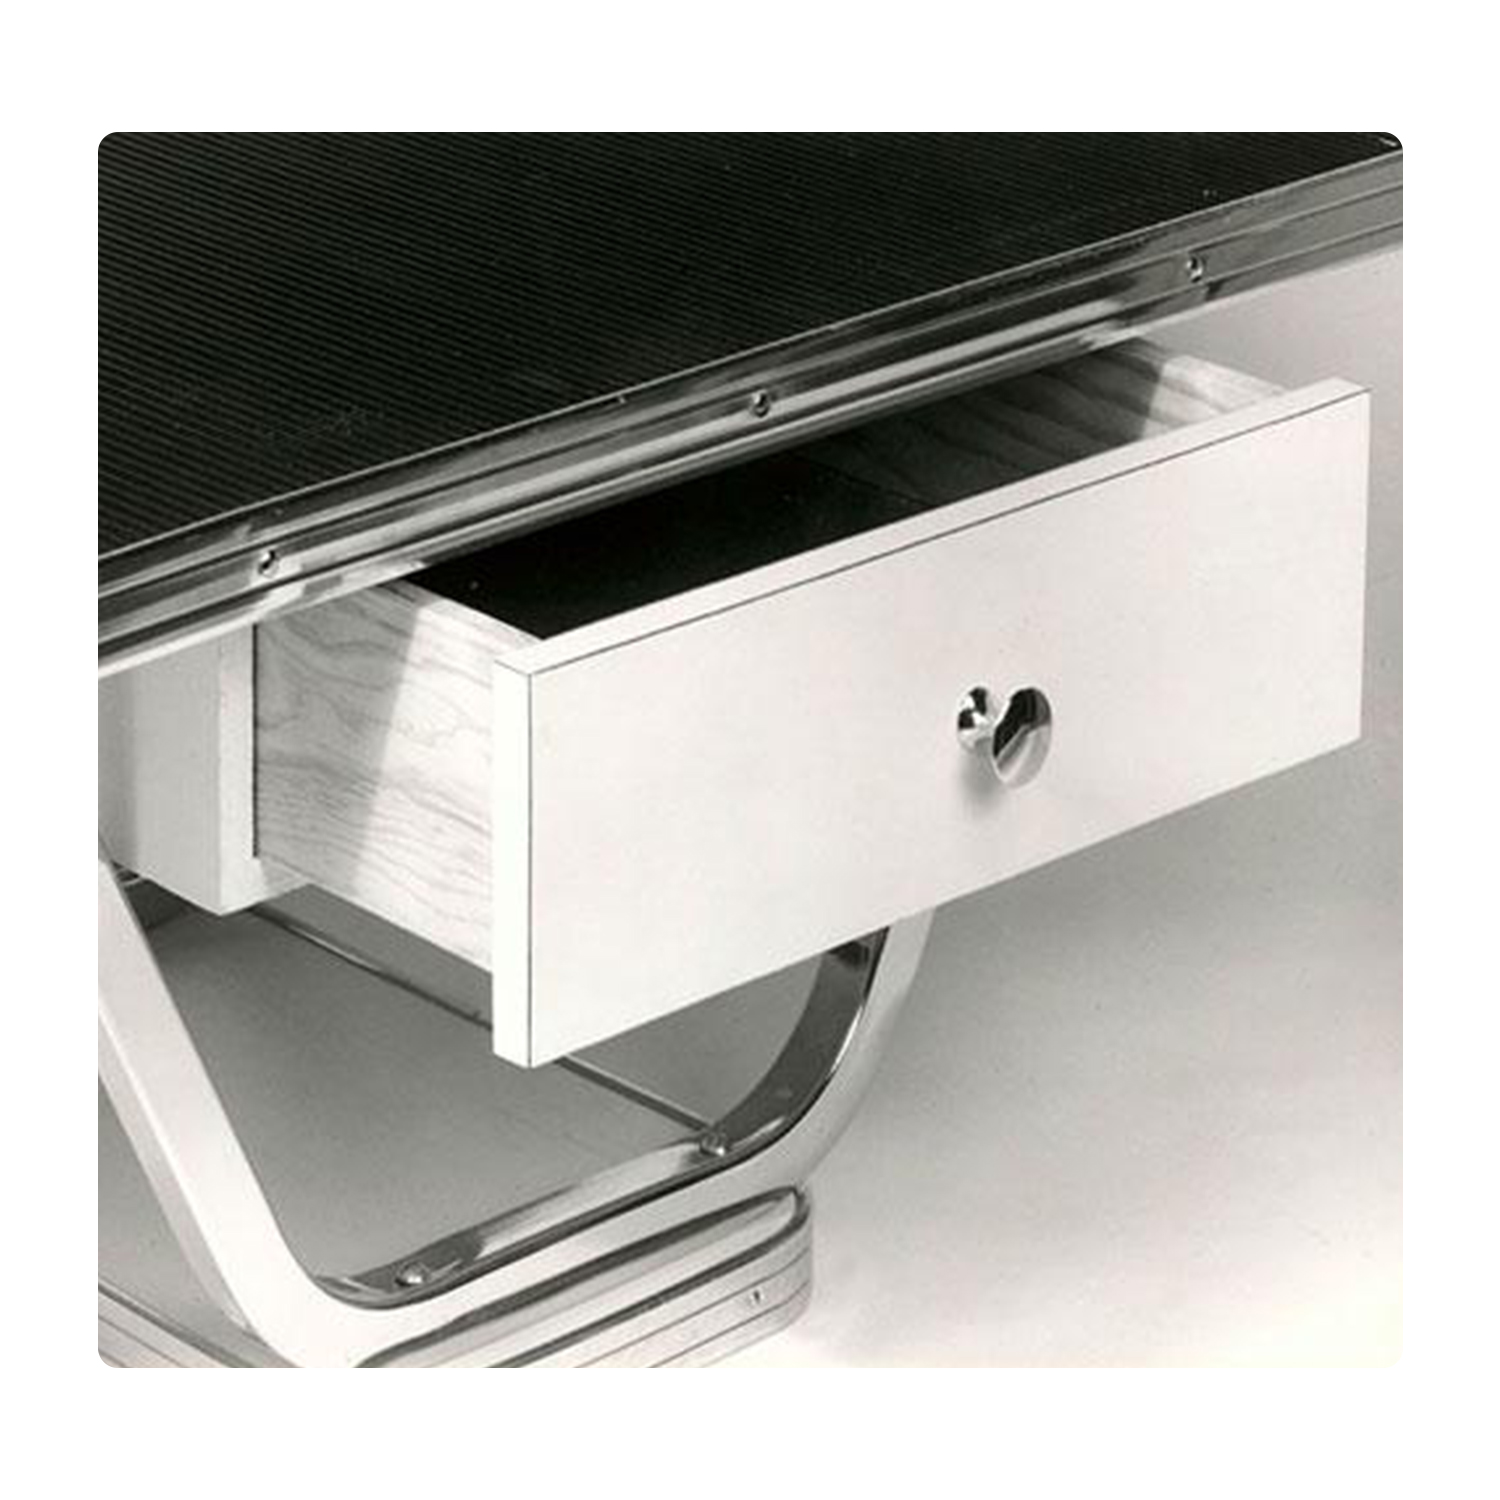 Hydraulic Grooming Table: Optional Utility Drawer